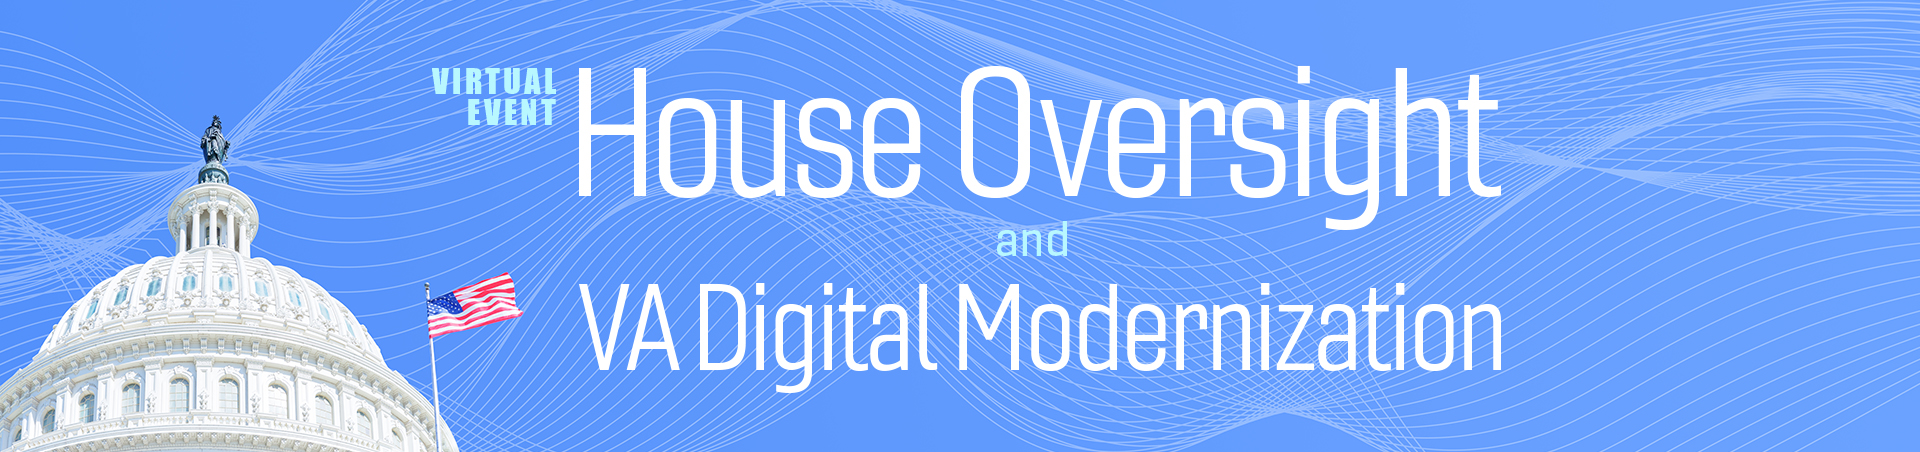 House Oversight and VA Digital Modernization Desktop Banner